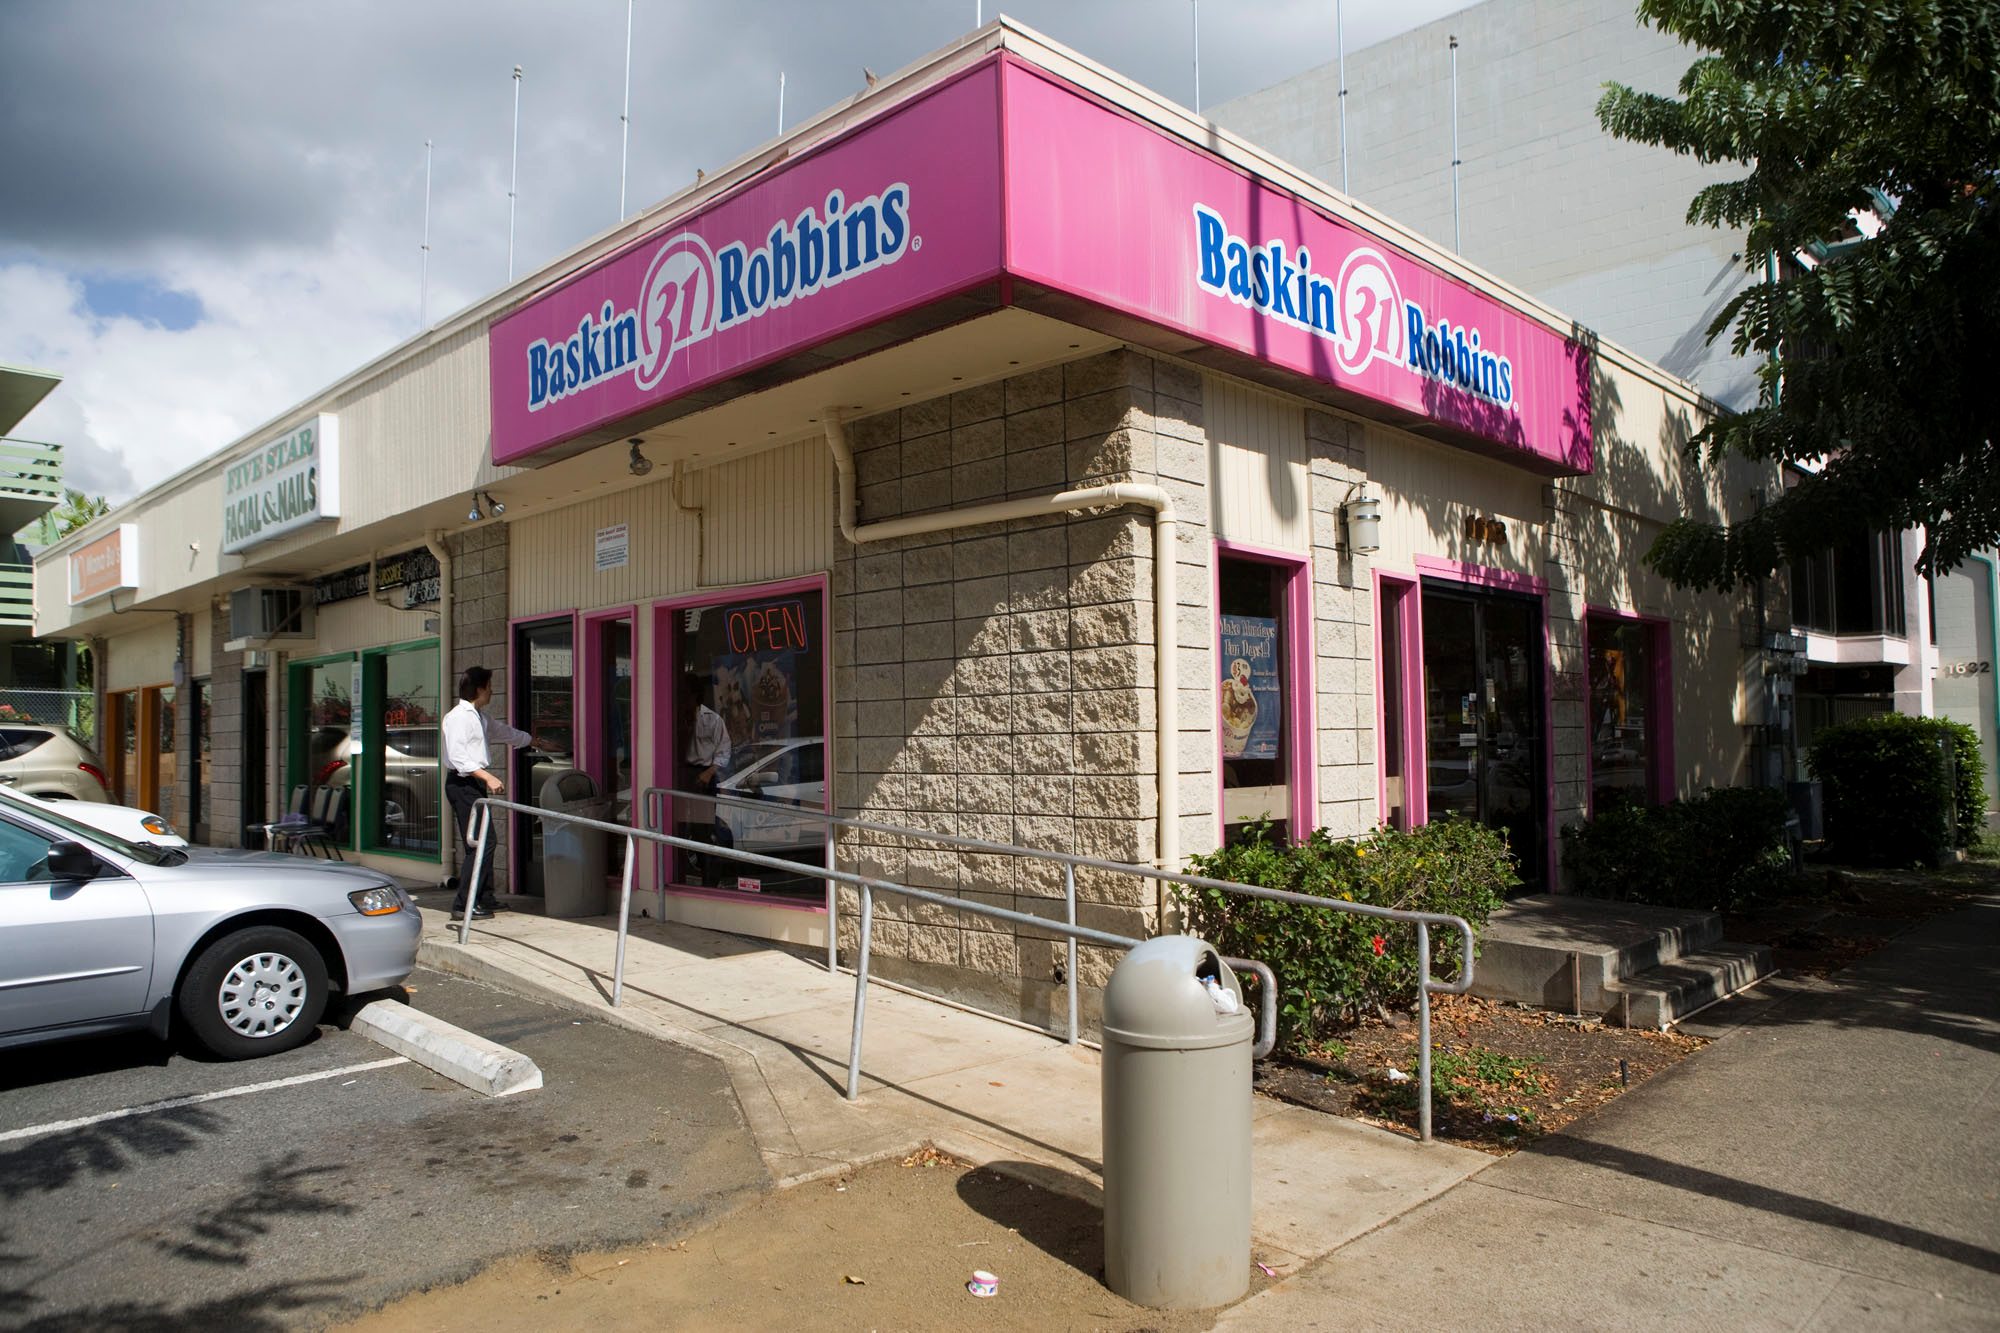 washington obama says he learned responsibility hard work from file this 2008 file photo shows the baskin robbins shop in honolulu where president